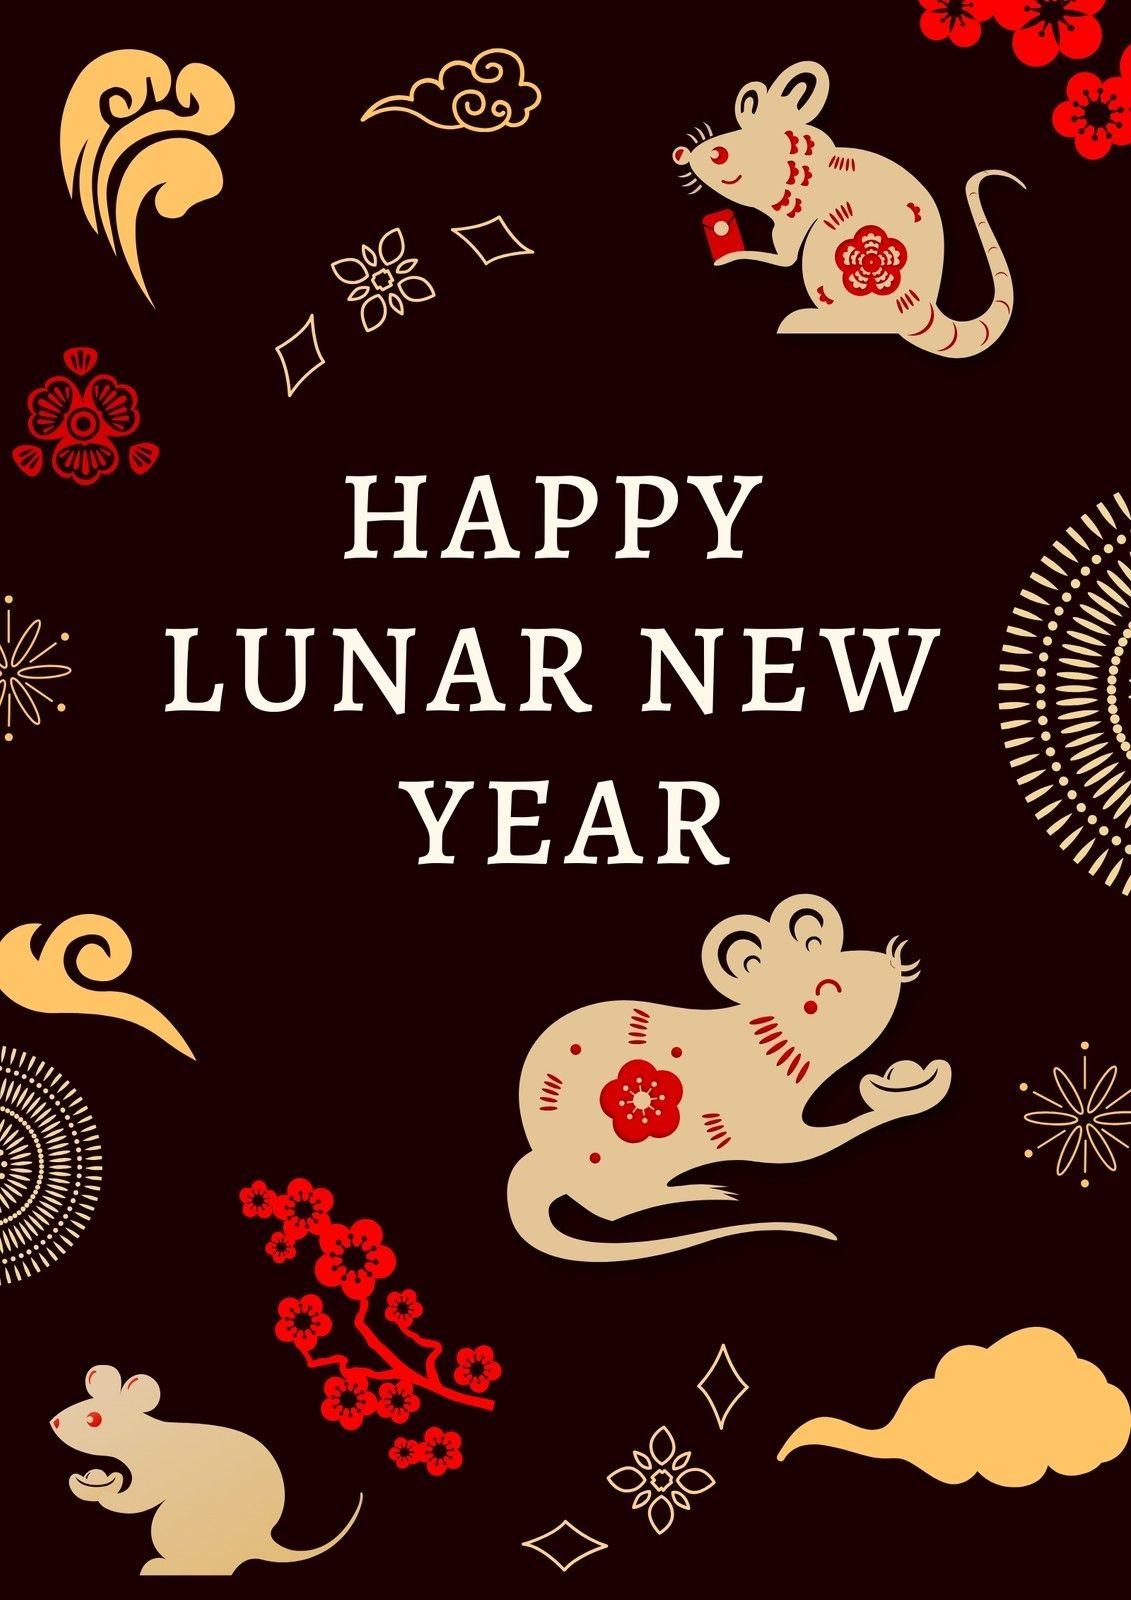 Black Brown And Red Illustration Lunar New Year Poster Templates By Canva Ad Red Sponsored Happy Lunar New Year Free Website Templates New Years Poster